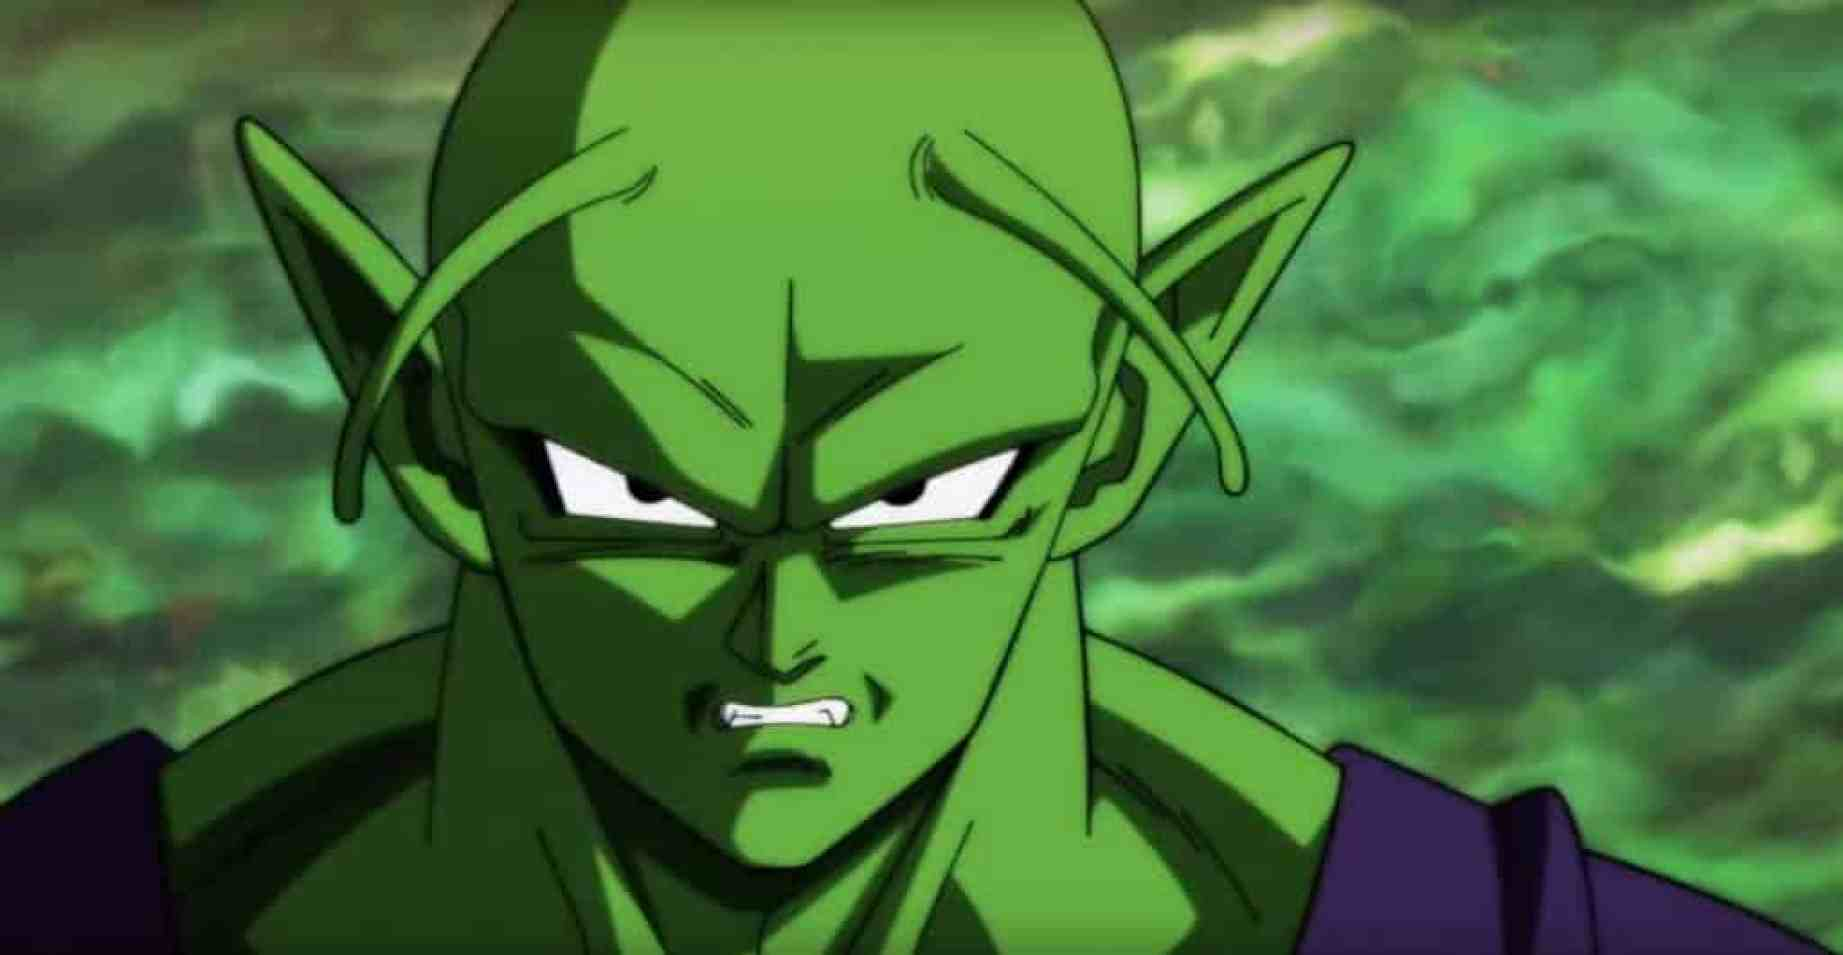 Piccolo is out of the tournament - Dragon Ball Super Episode 119 Review